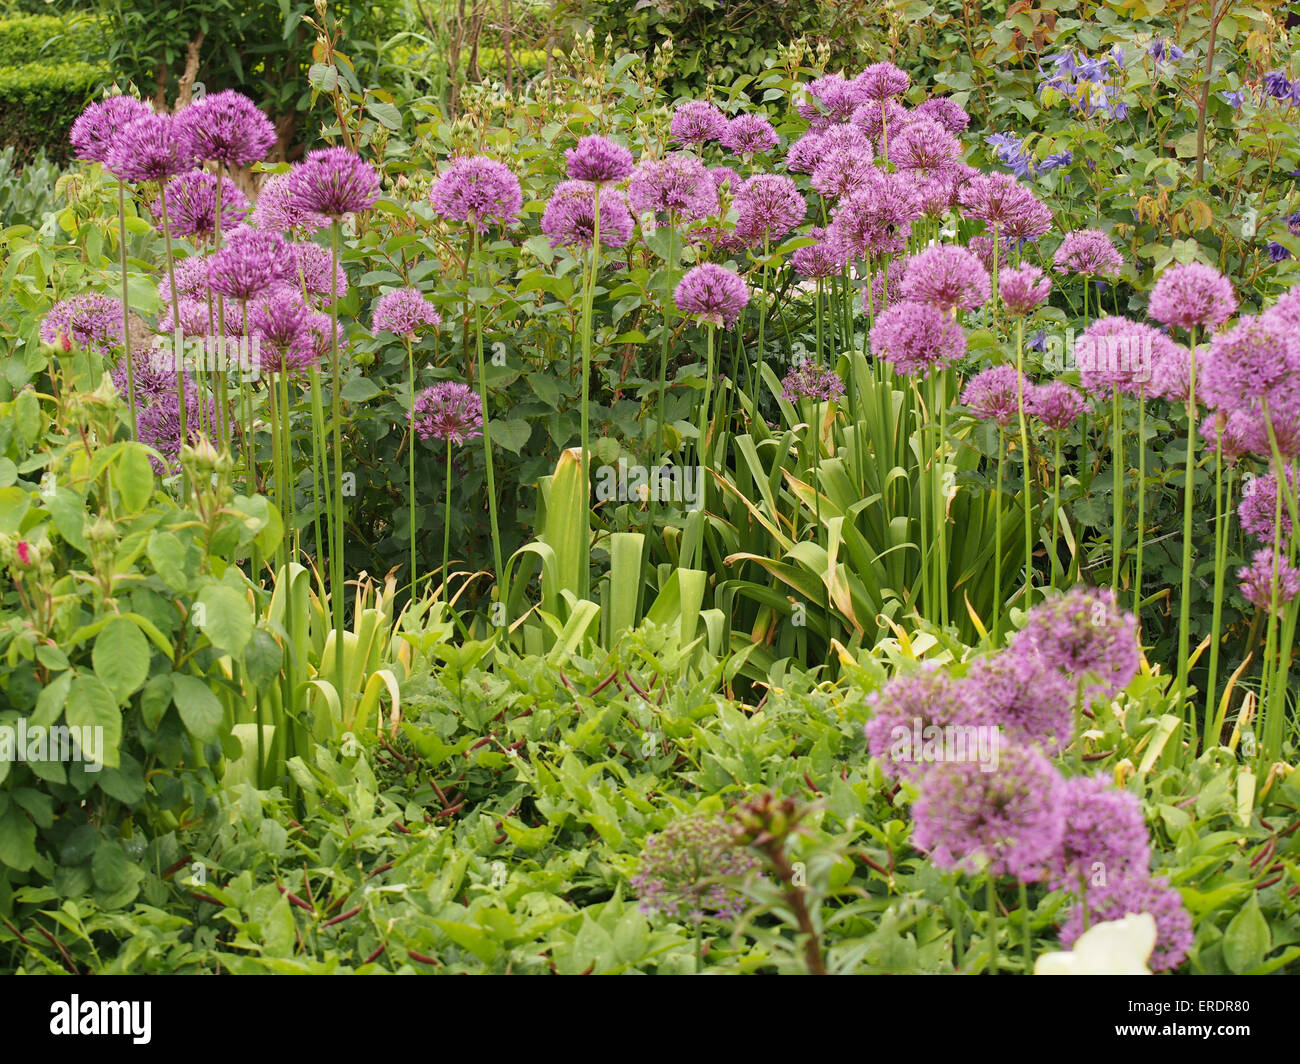 Group of Allium flower heads planted in a garden setting - Stock Image